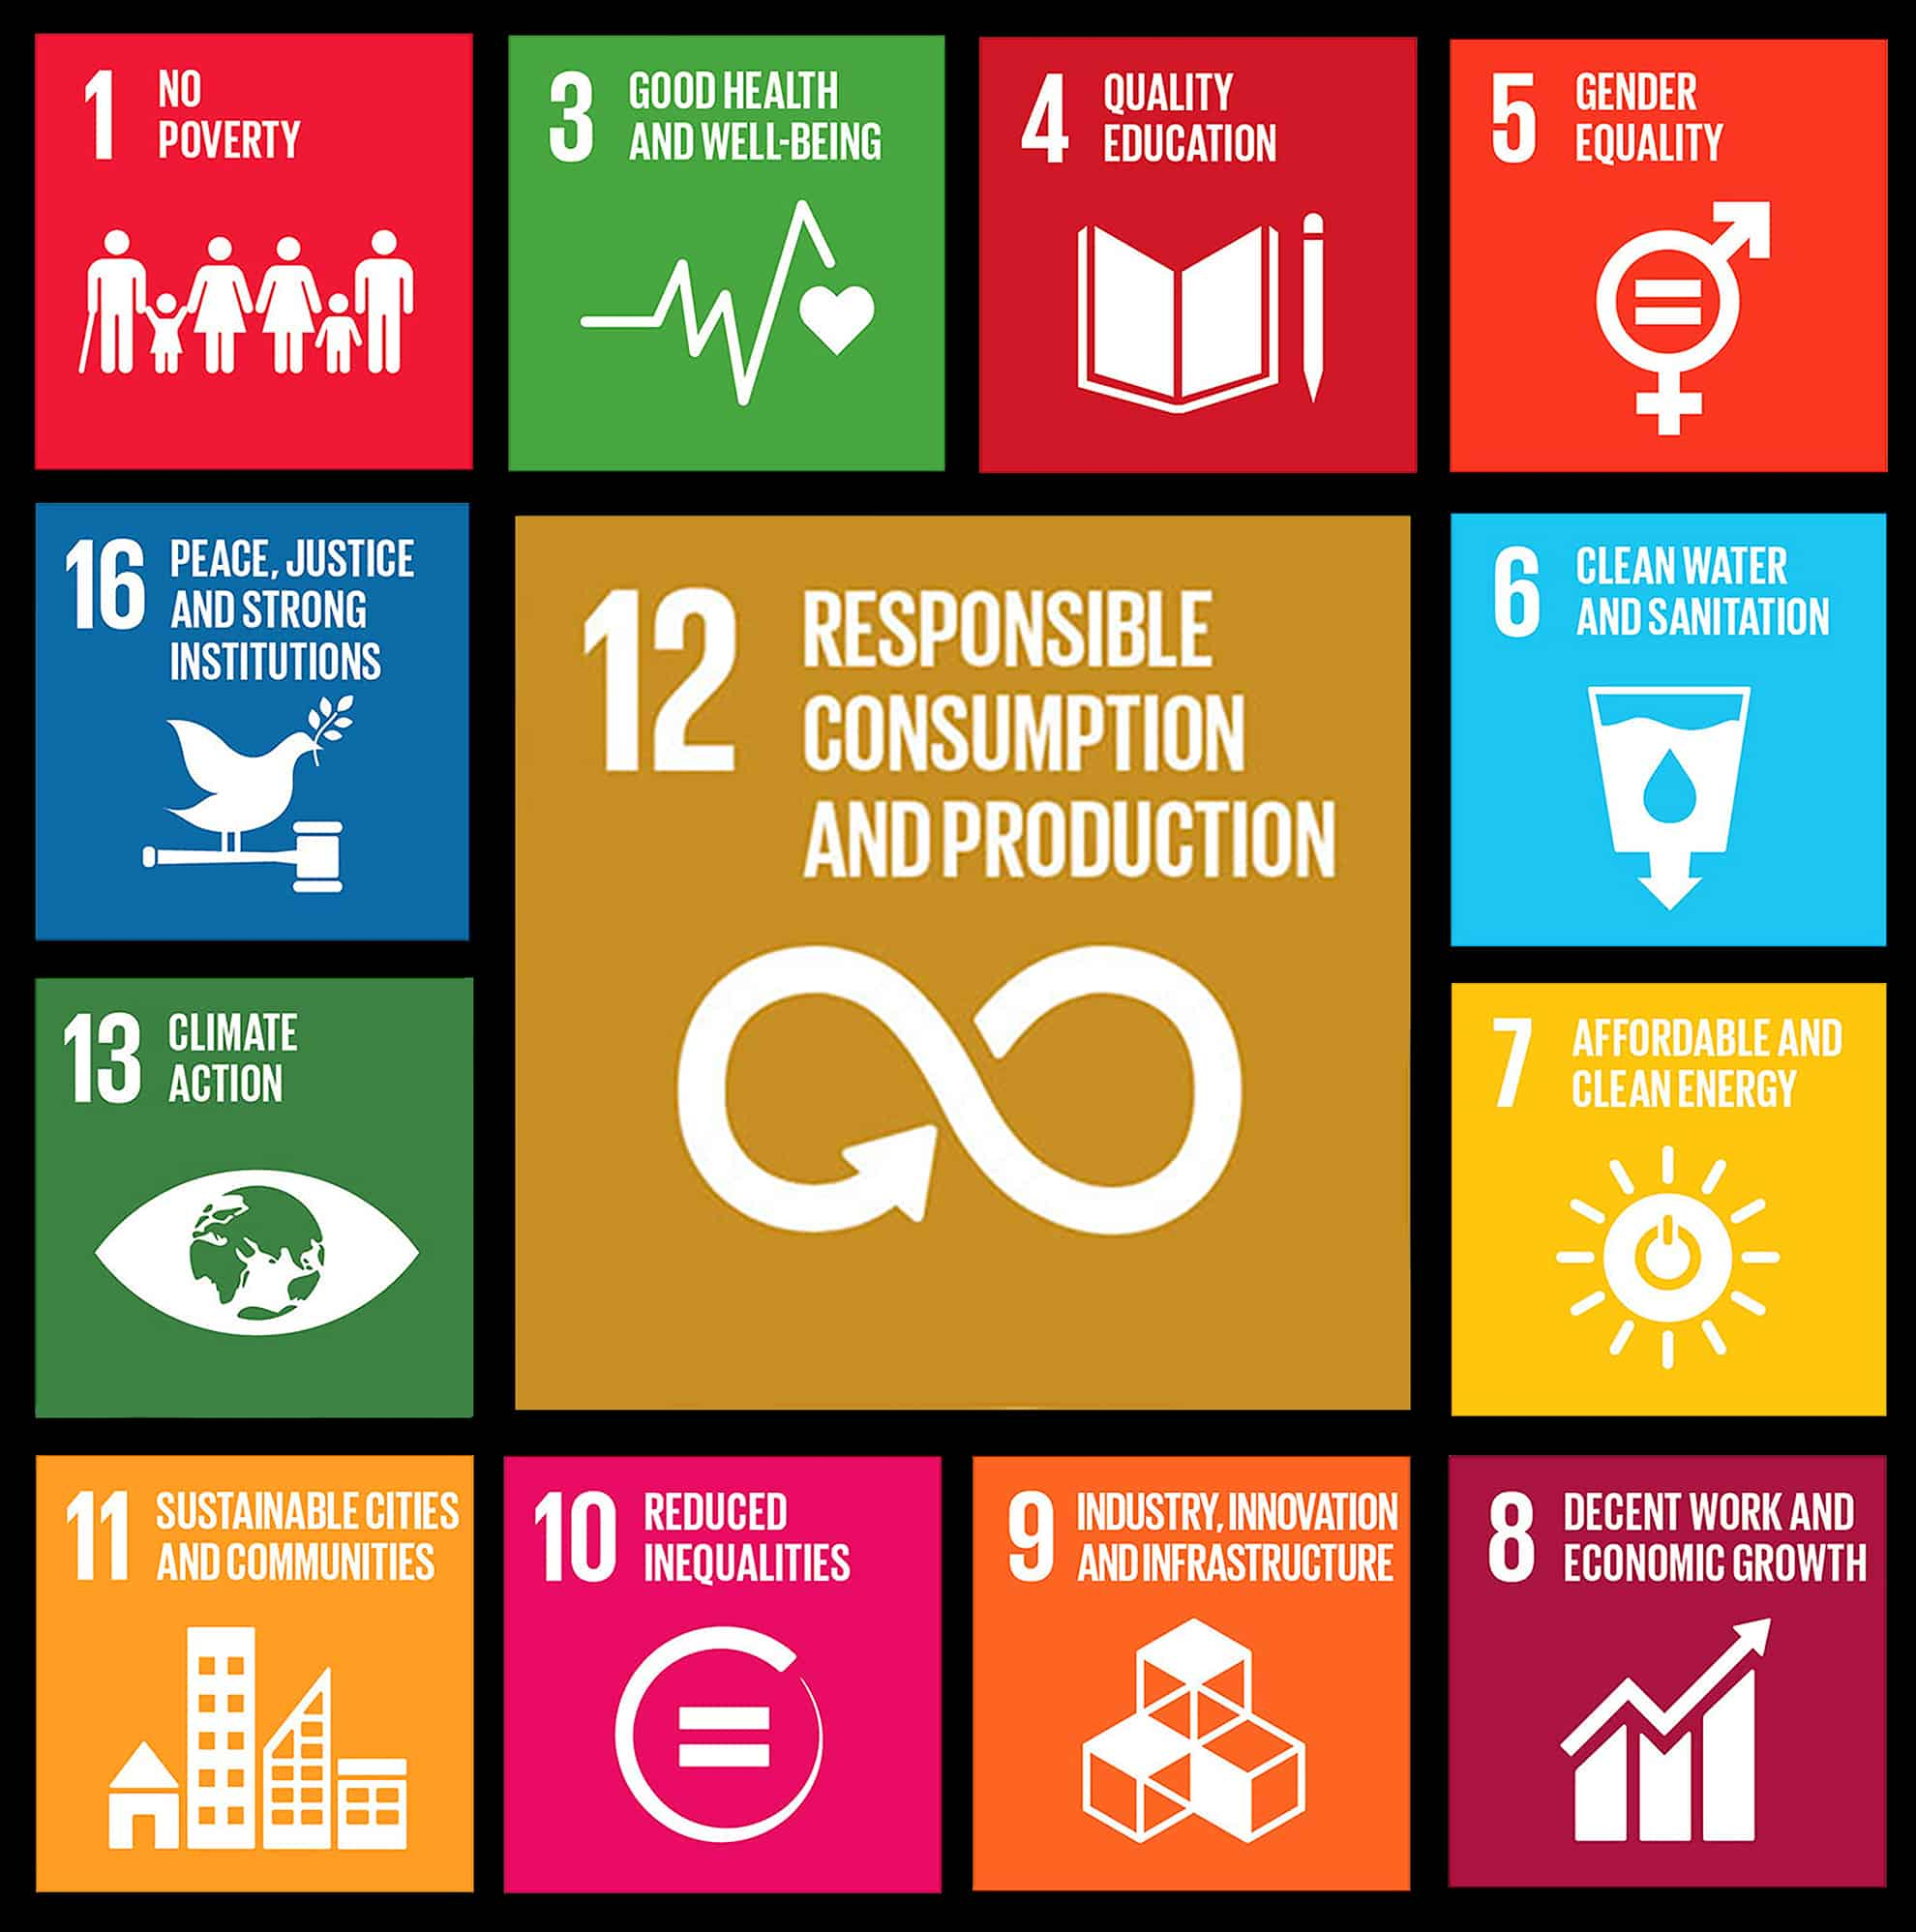 Sustainability, a key element of SDG #12, is integral to making progress in many other goals that affect all our lives.